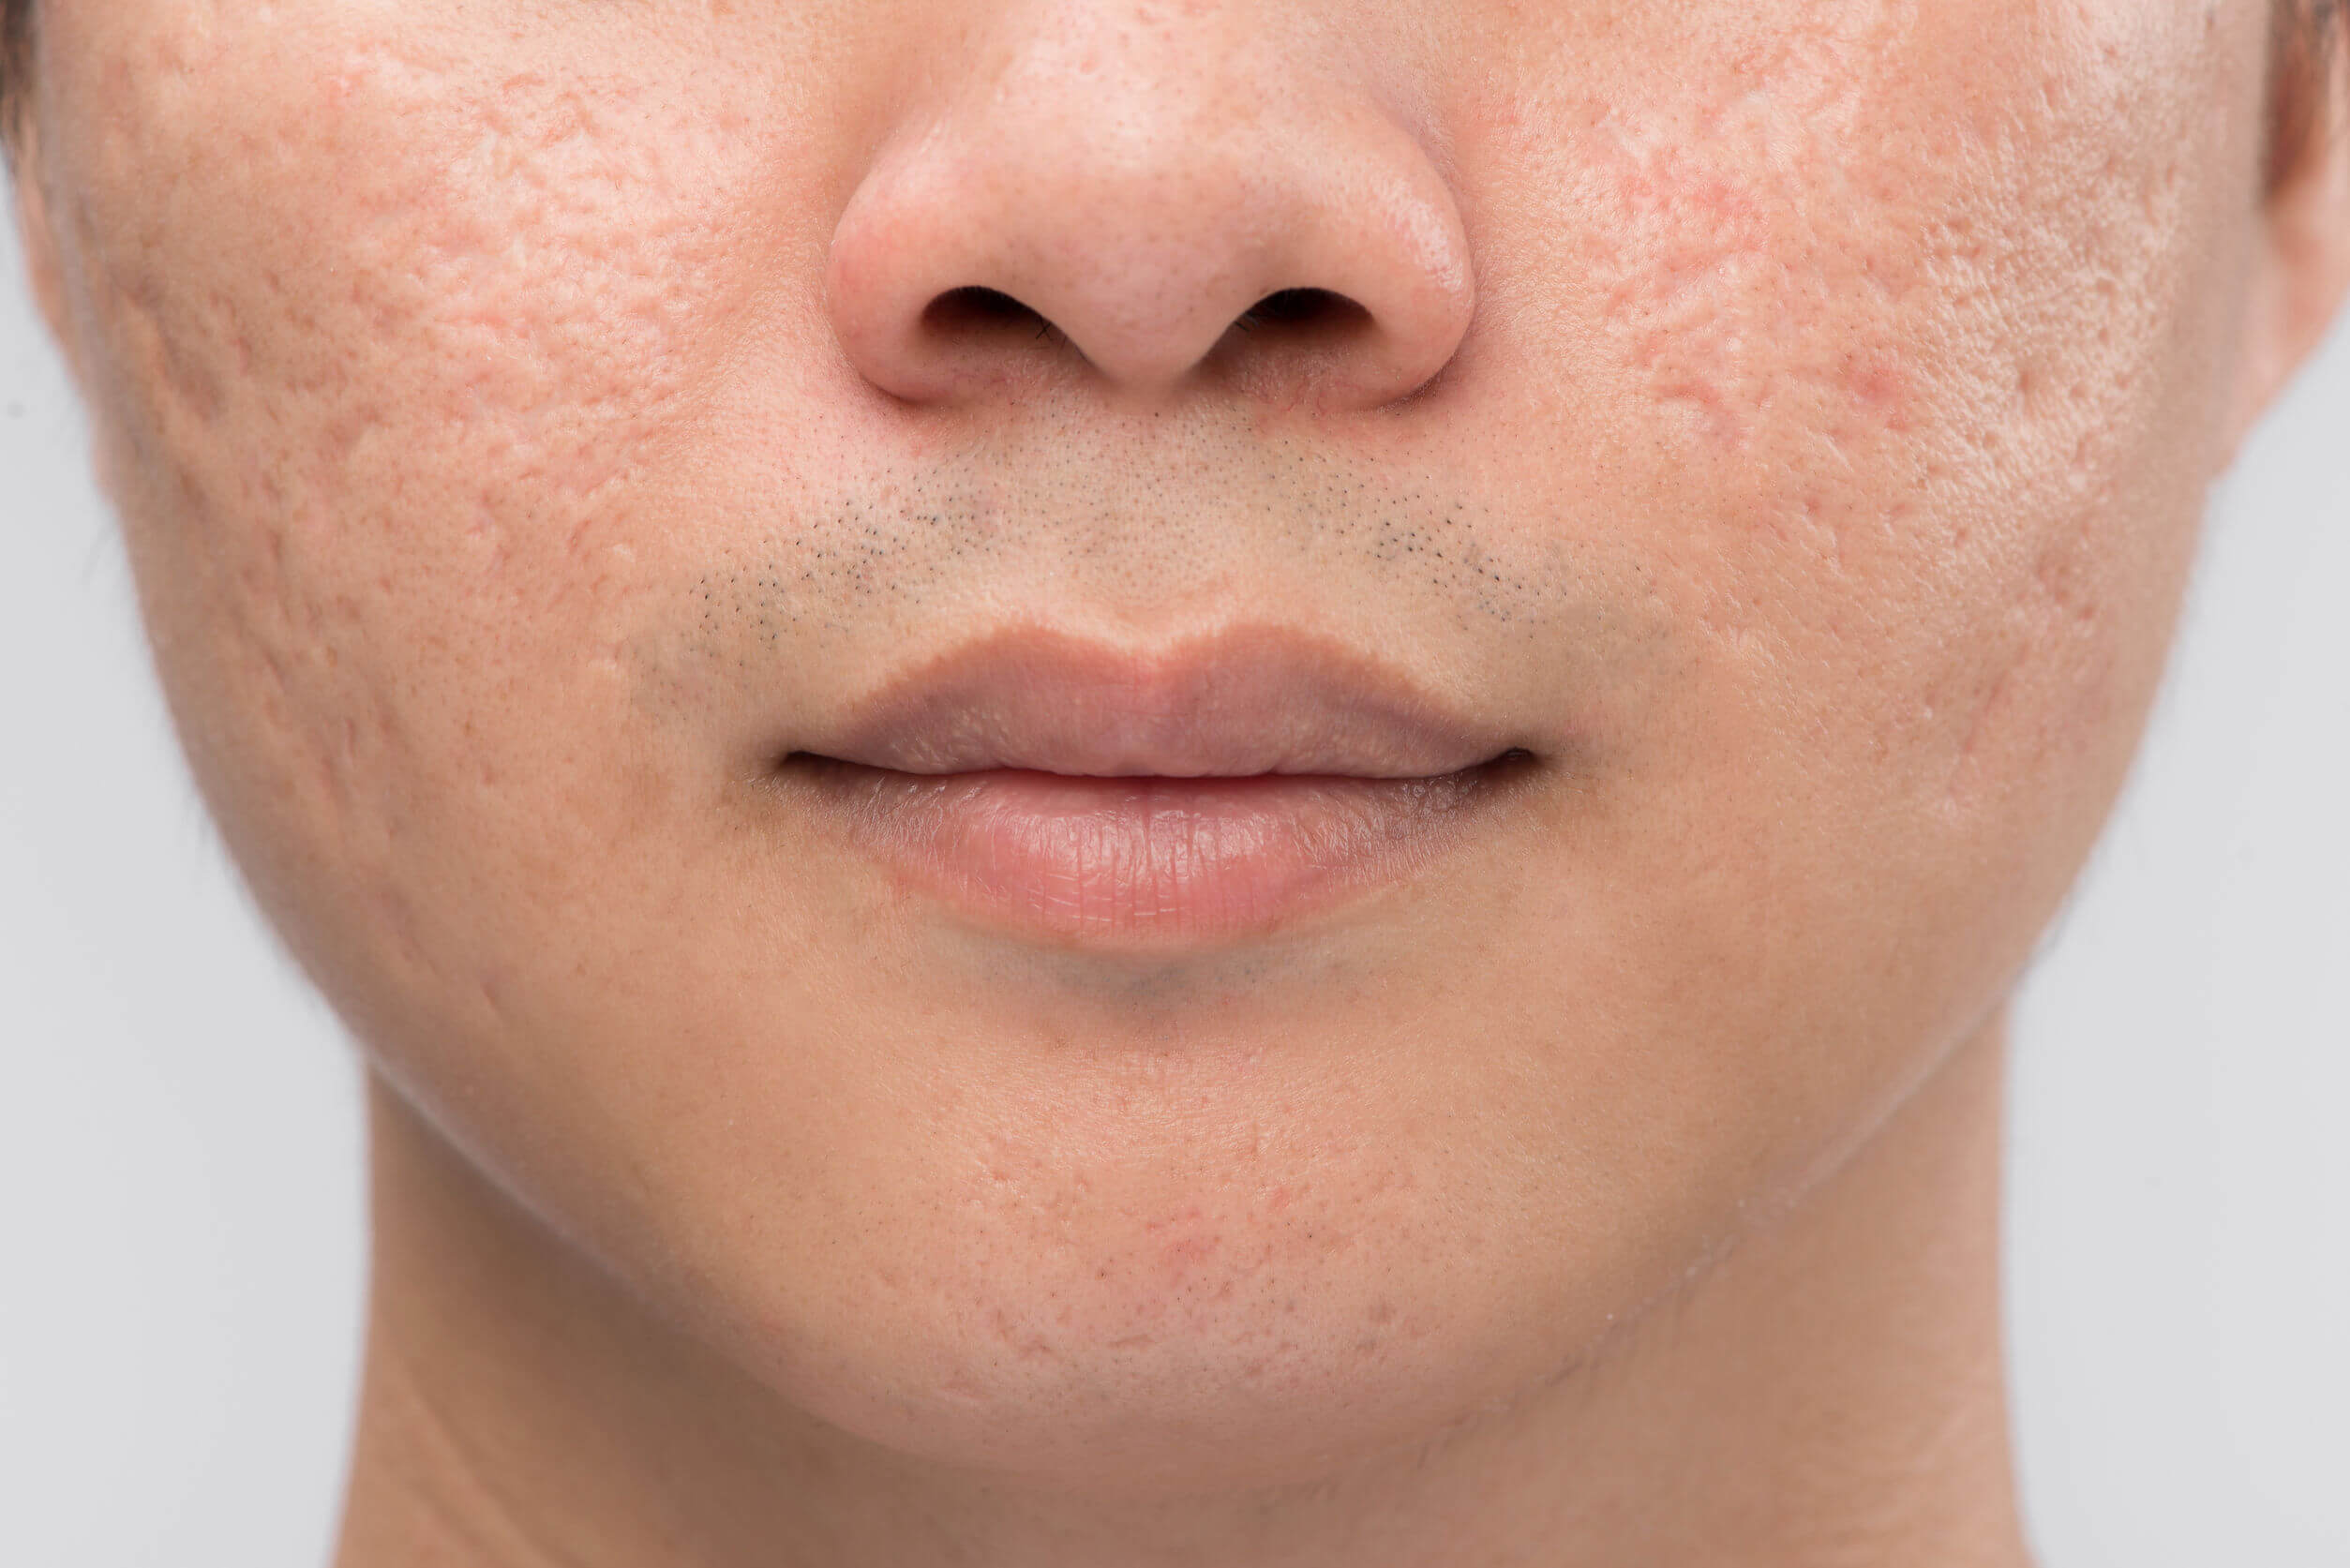 Oily skin can promote the appearance of acne and its consequences.